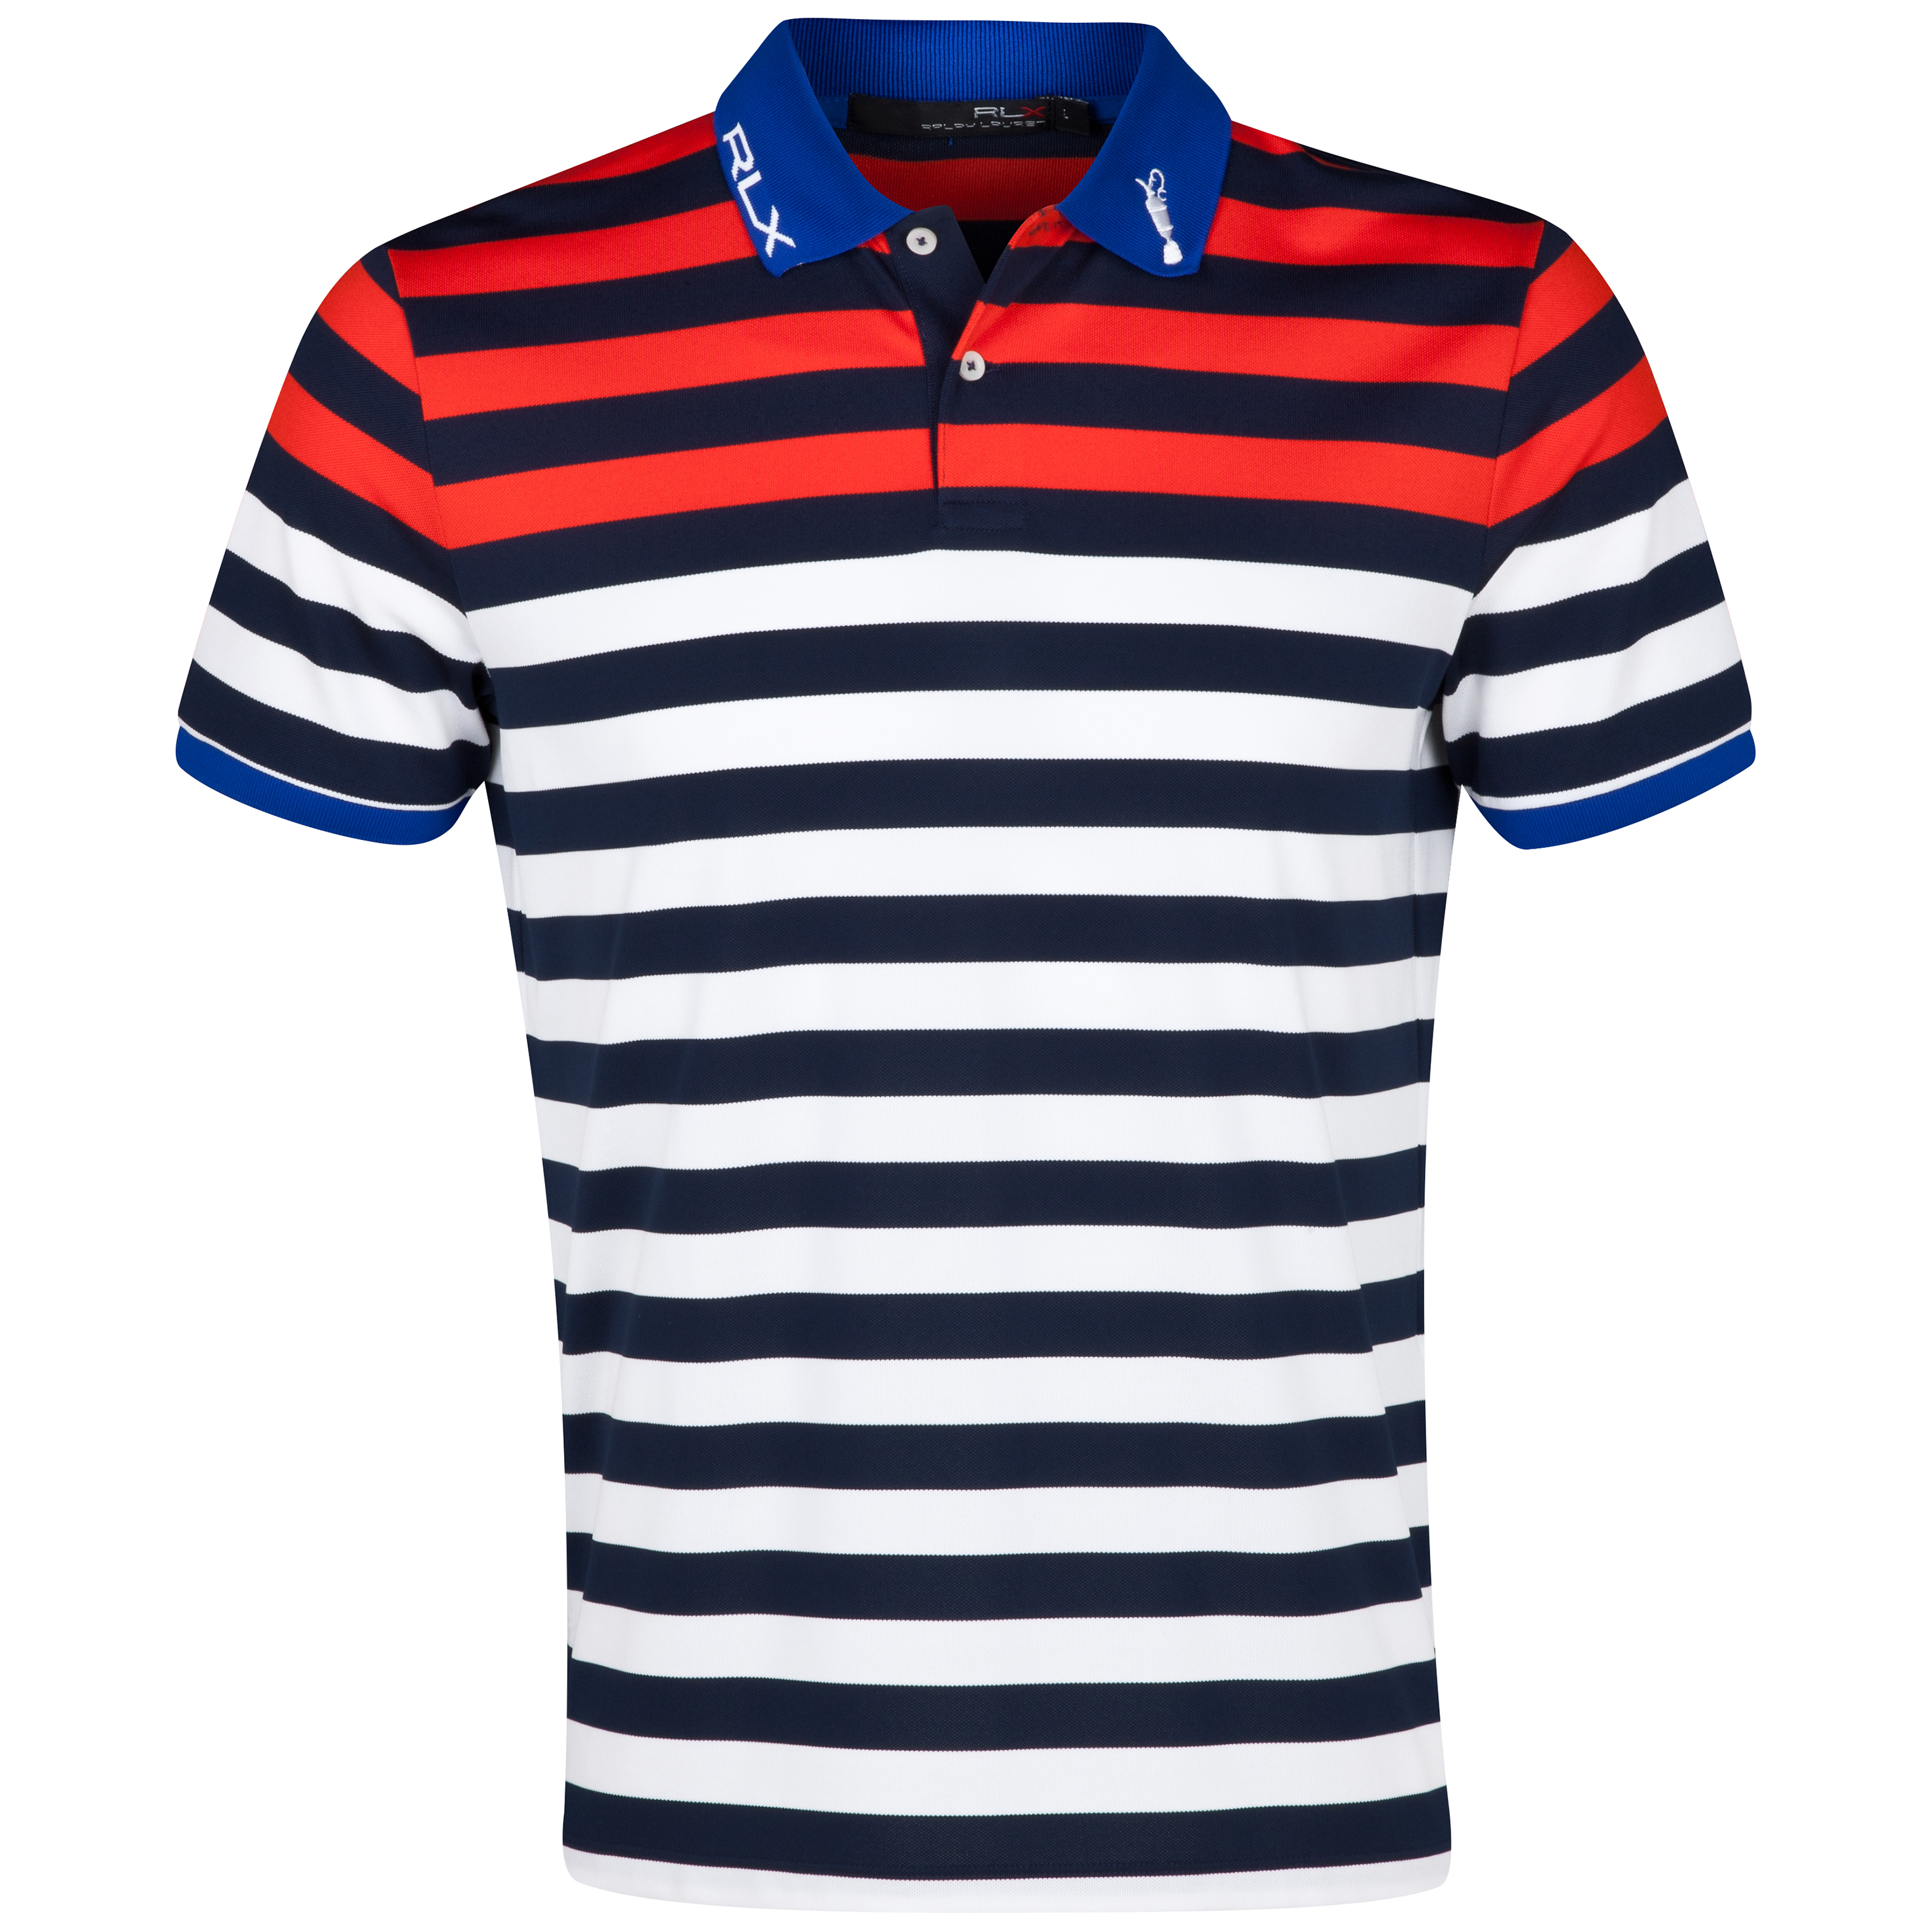 Open Golf The Open Championship 2013 Muirfield Ralph Lauren RLX Polo Dk Blue